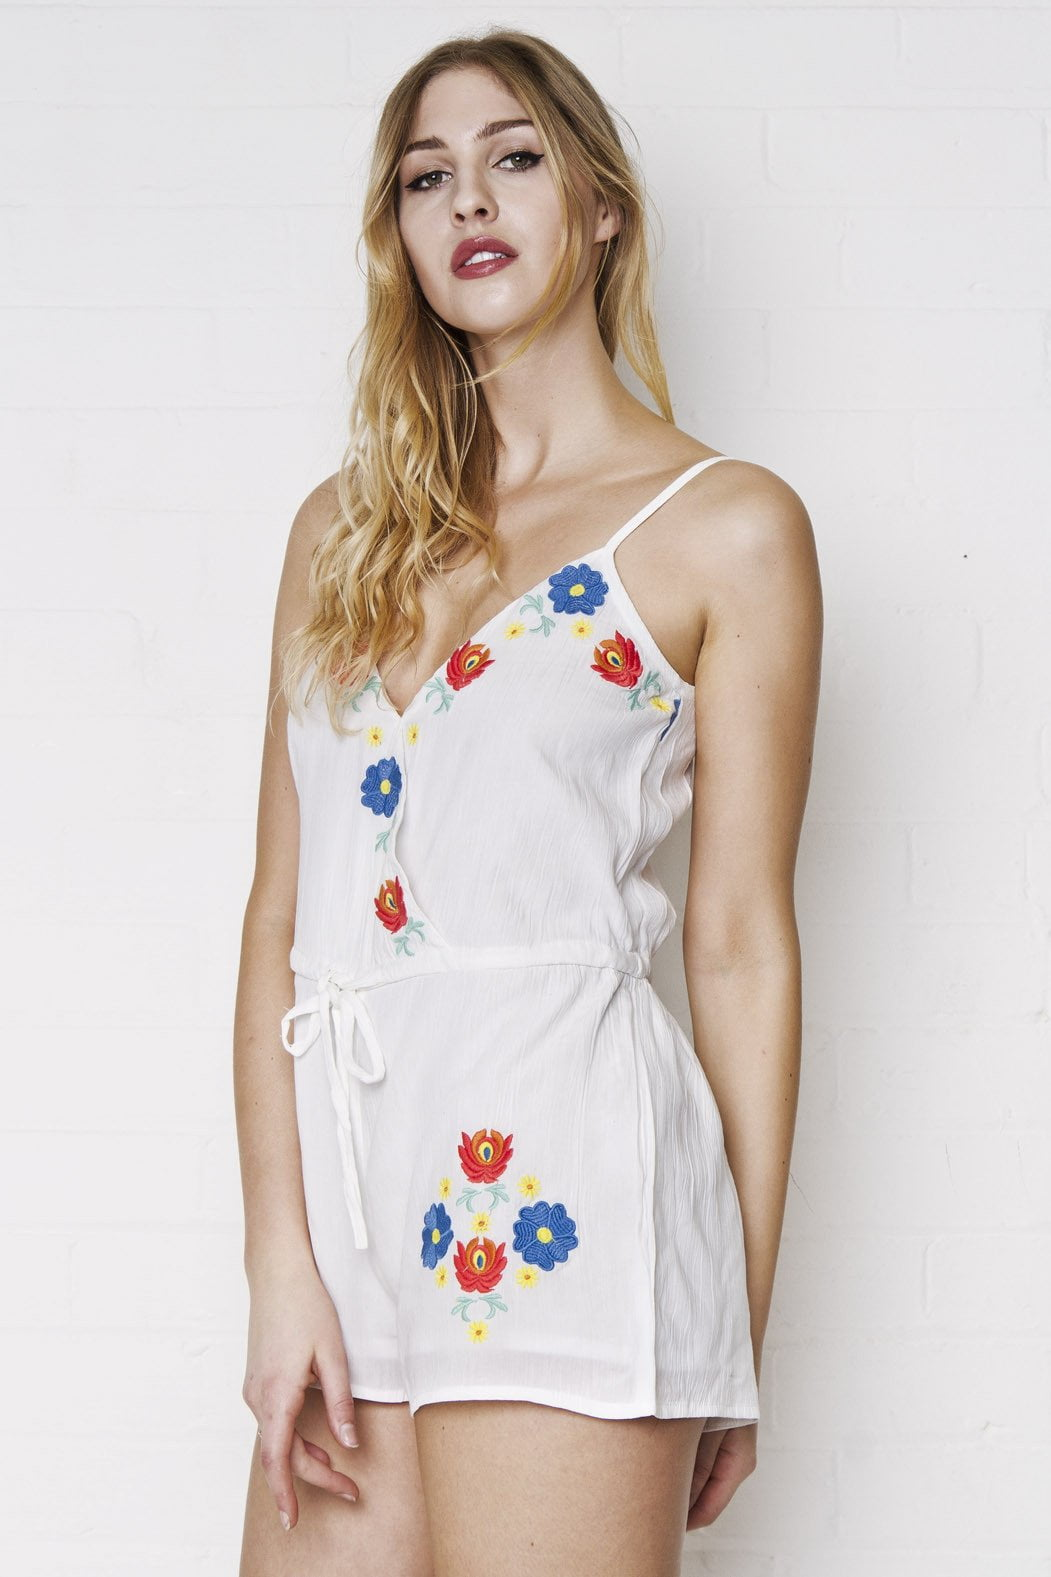 Ariana Floral Embroidered Playsuit - Liquor N Poker  Liquor N Poker